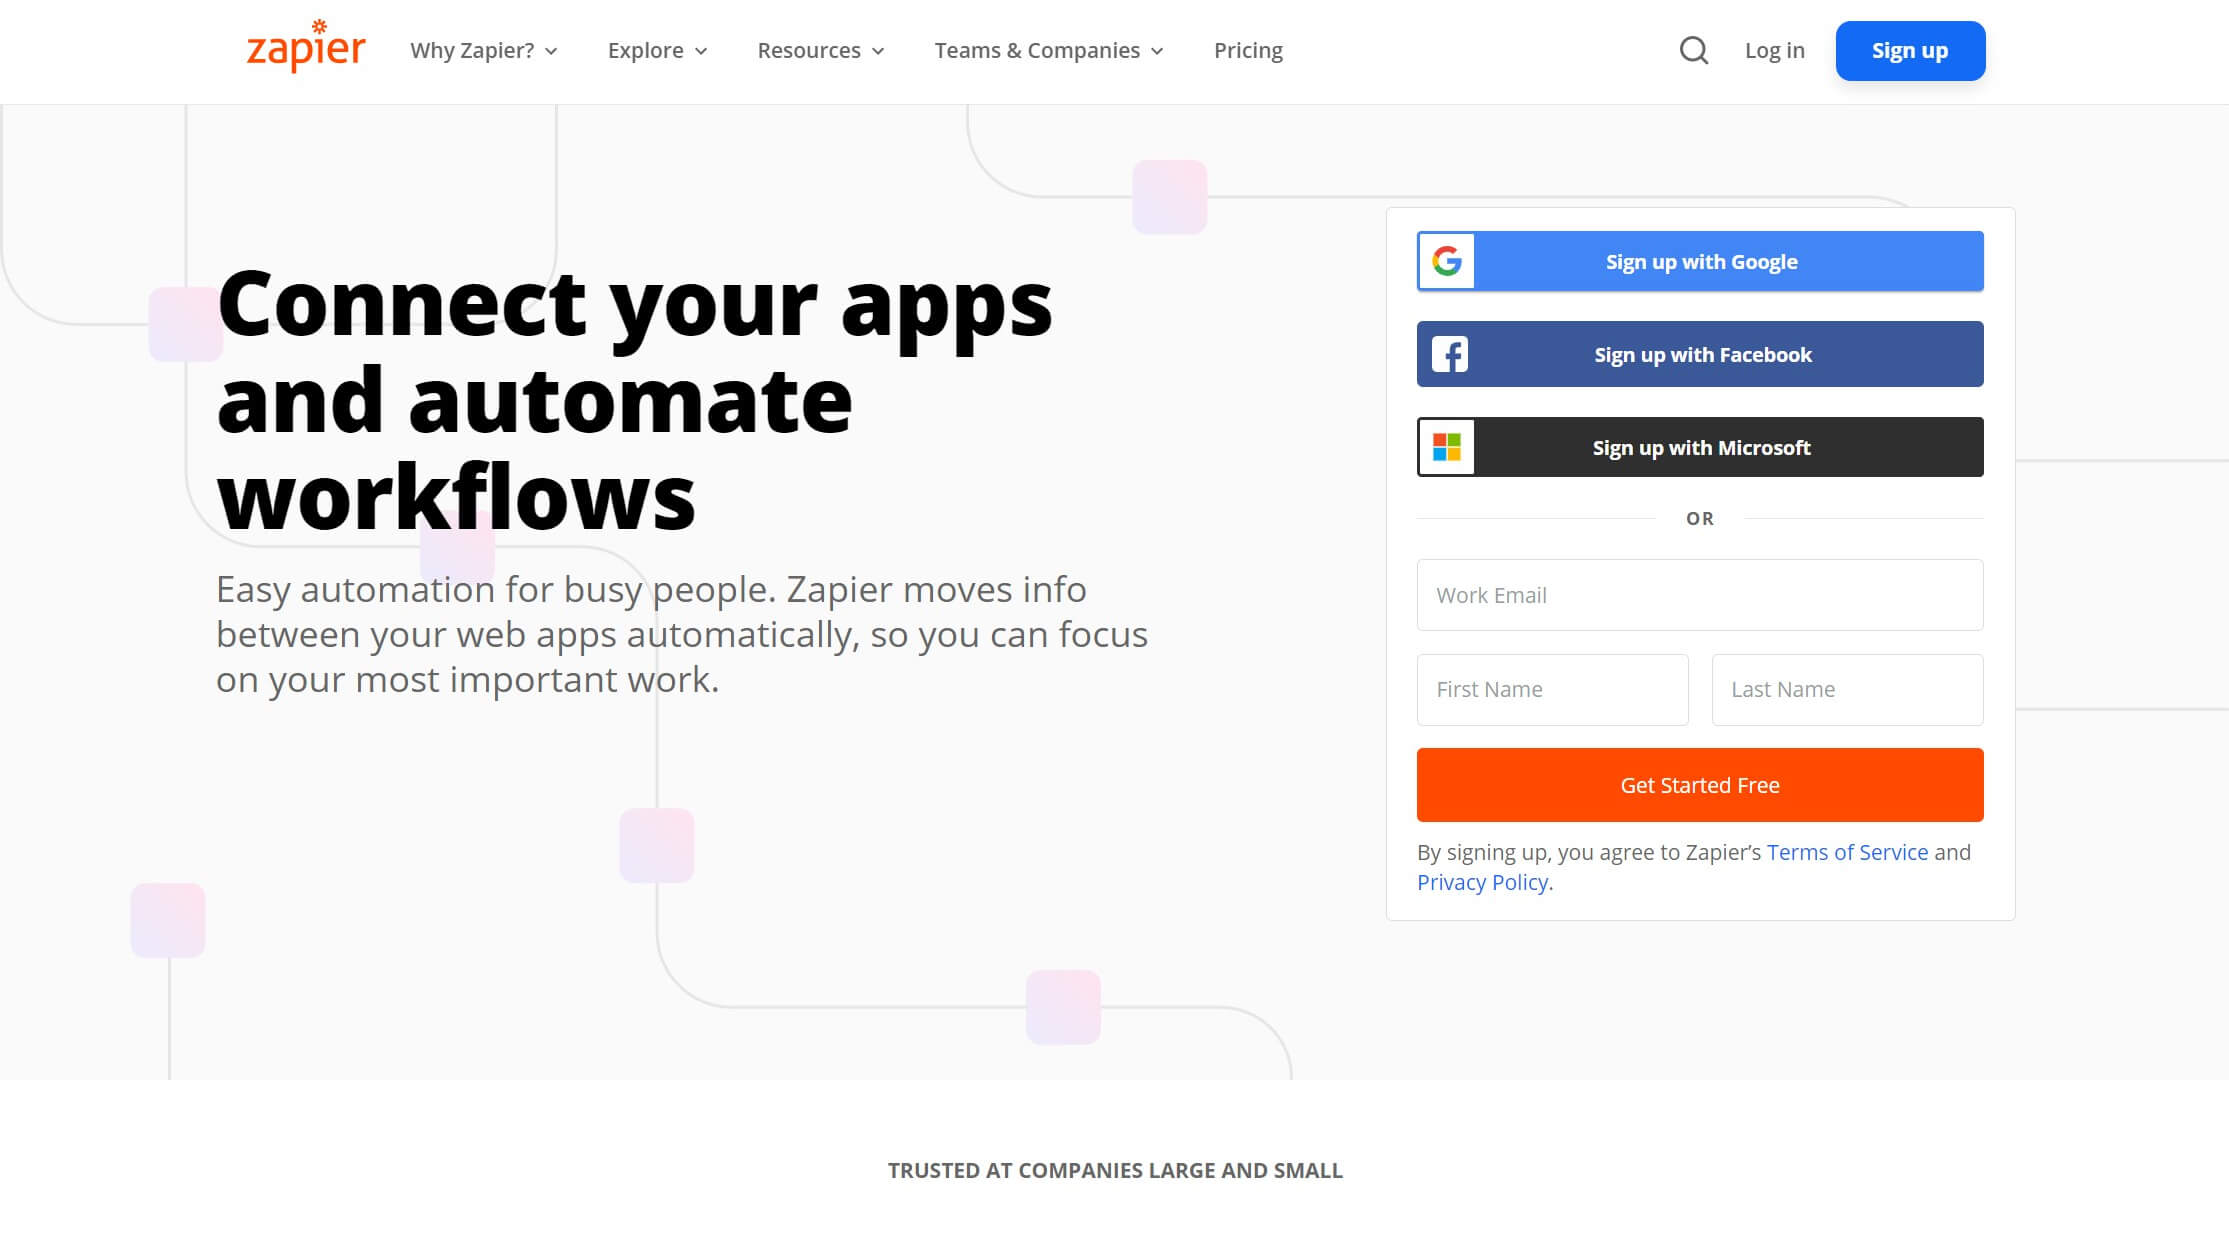 how-to-use-woocommerce-and-quickbooks-together-2 How to Use WooCommerce and QuickBooks Together